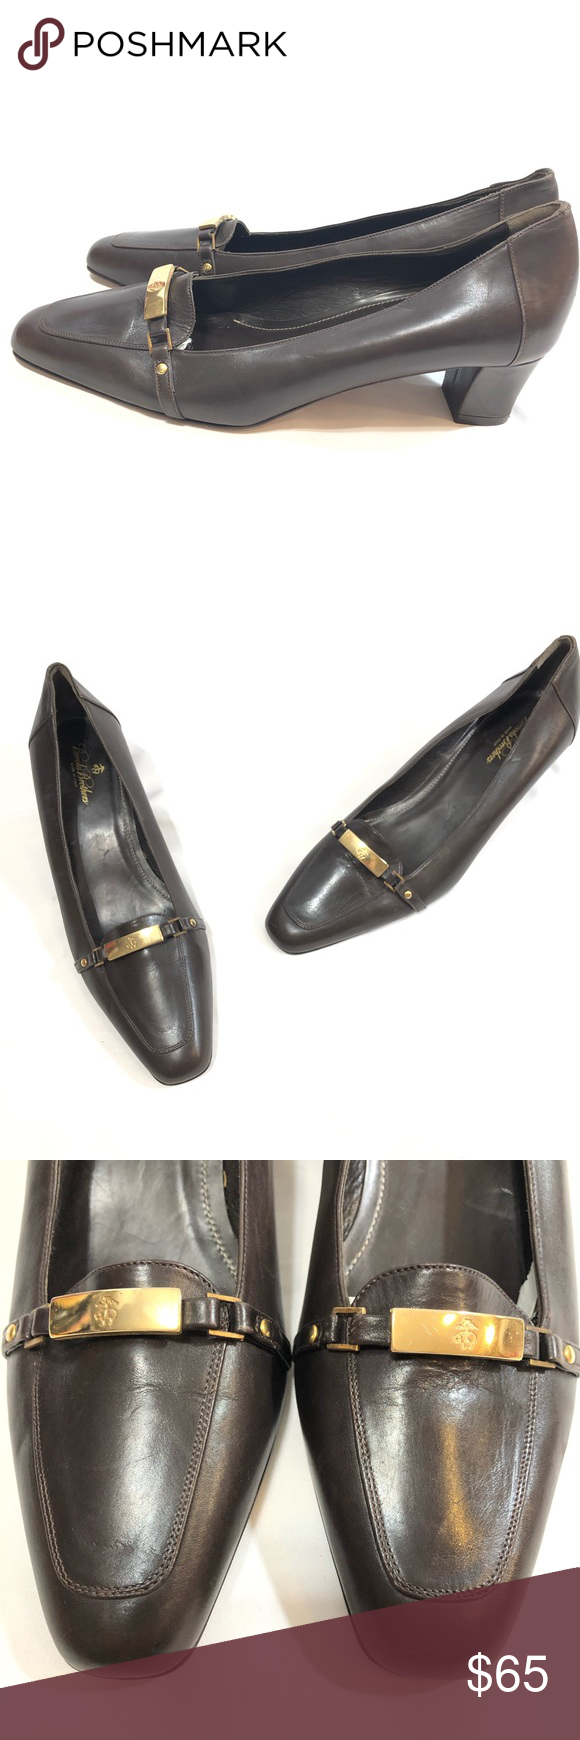 e0f318d17ff Brooks Brothers Brown Kitten Heeled Loafers The Brooks Brothers Women s  Collection by Creative Director Zac Posen